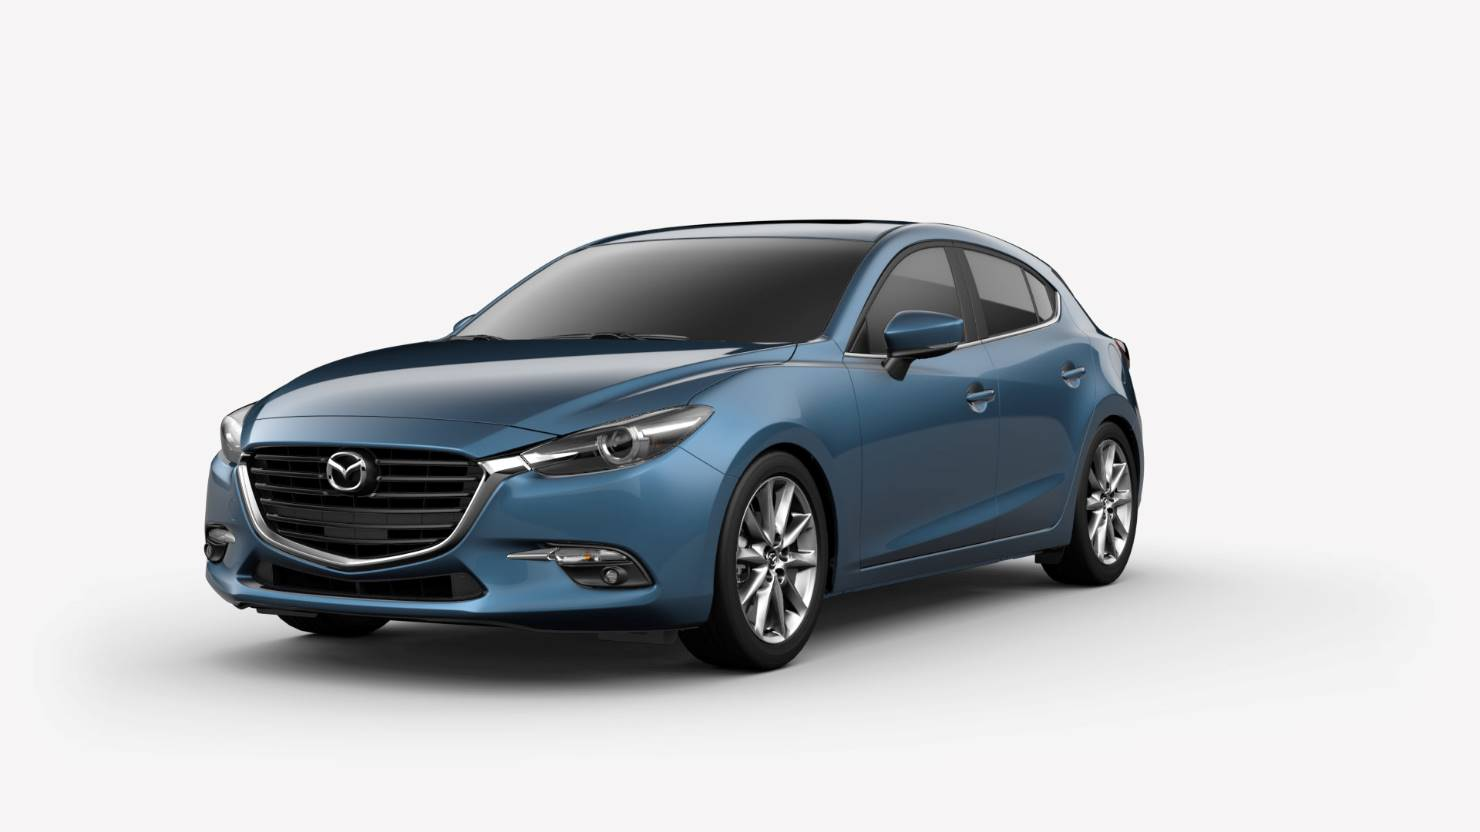 2018 Mazda3 Hatchback, Eternal Blue